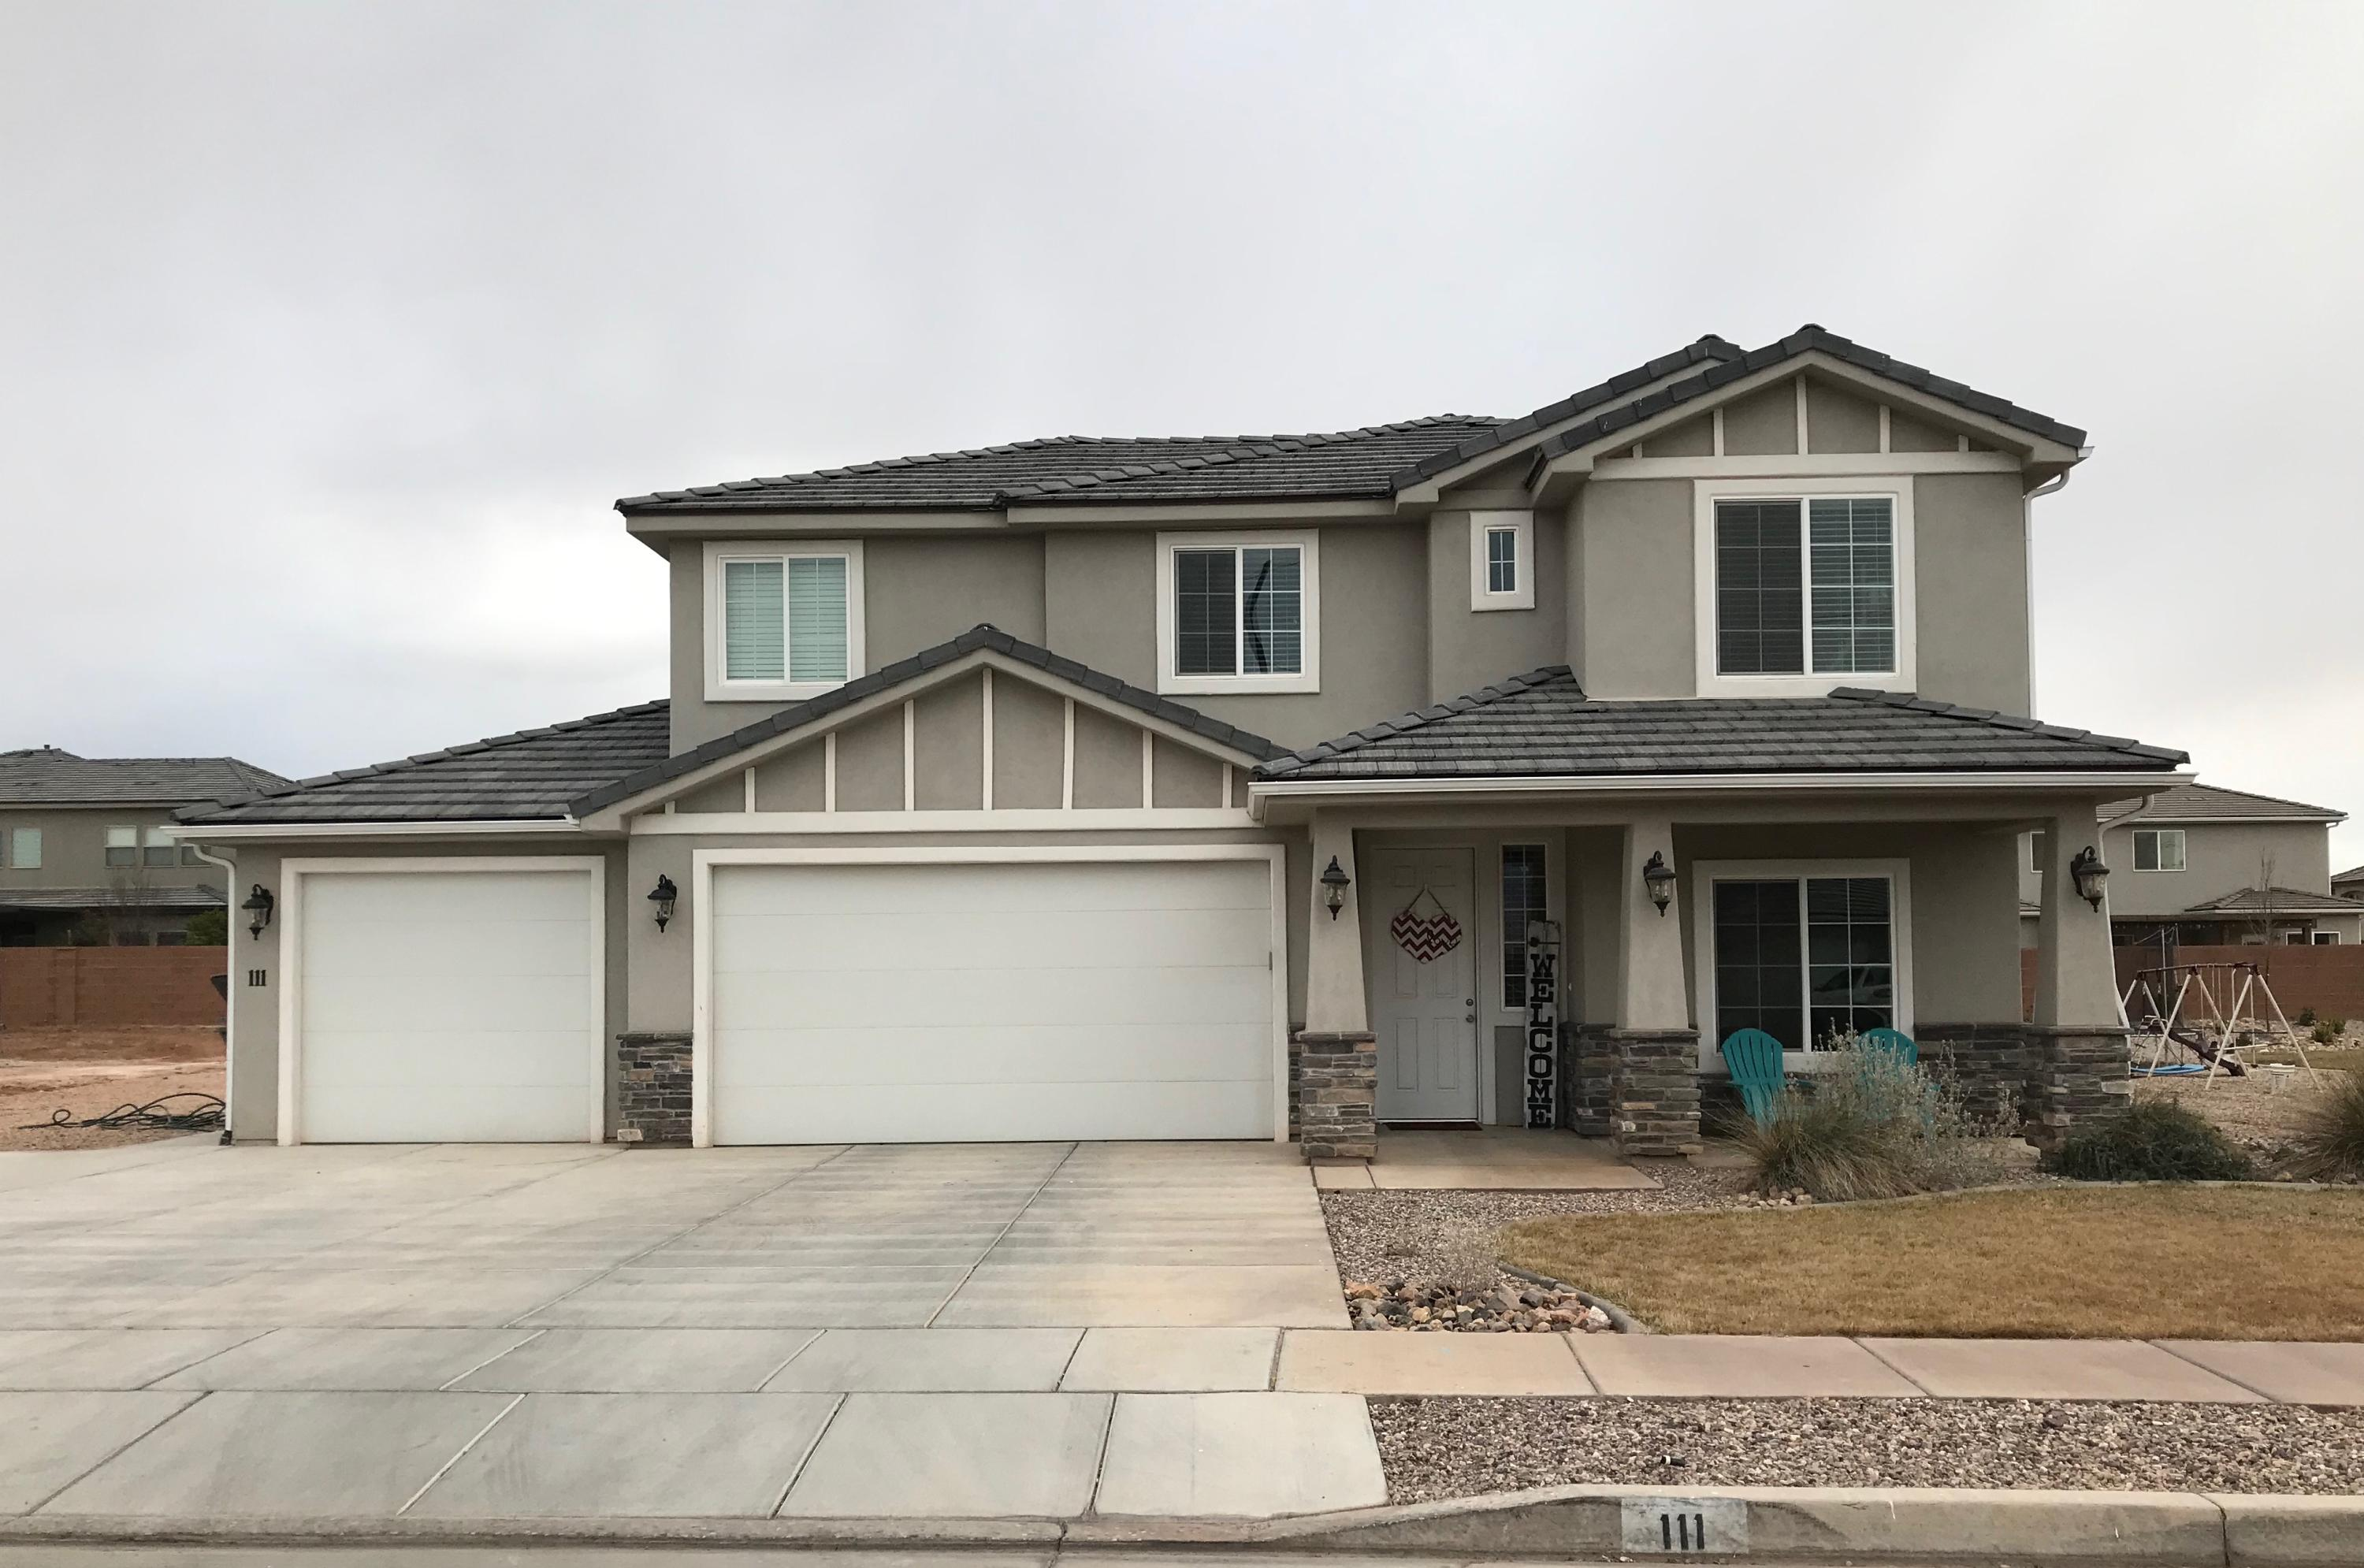 111 W Chester Field Dr, Washington Ut 84780